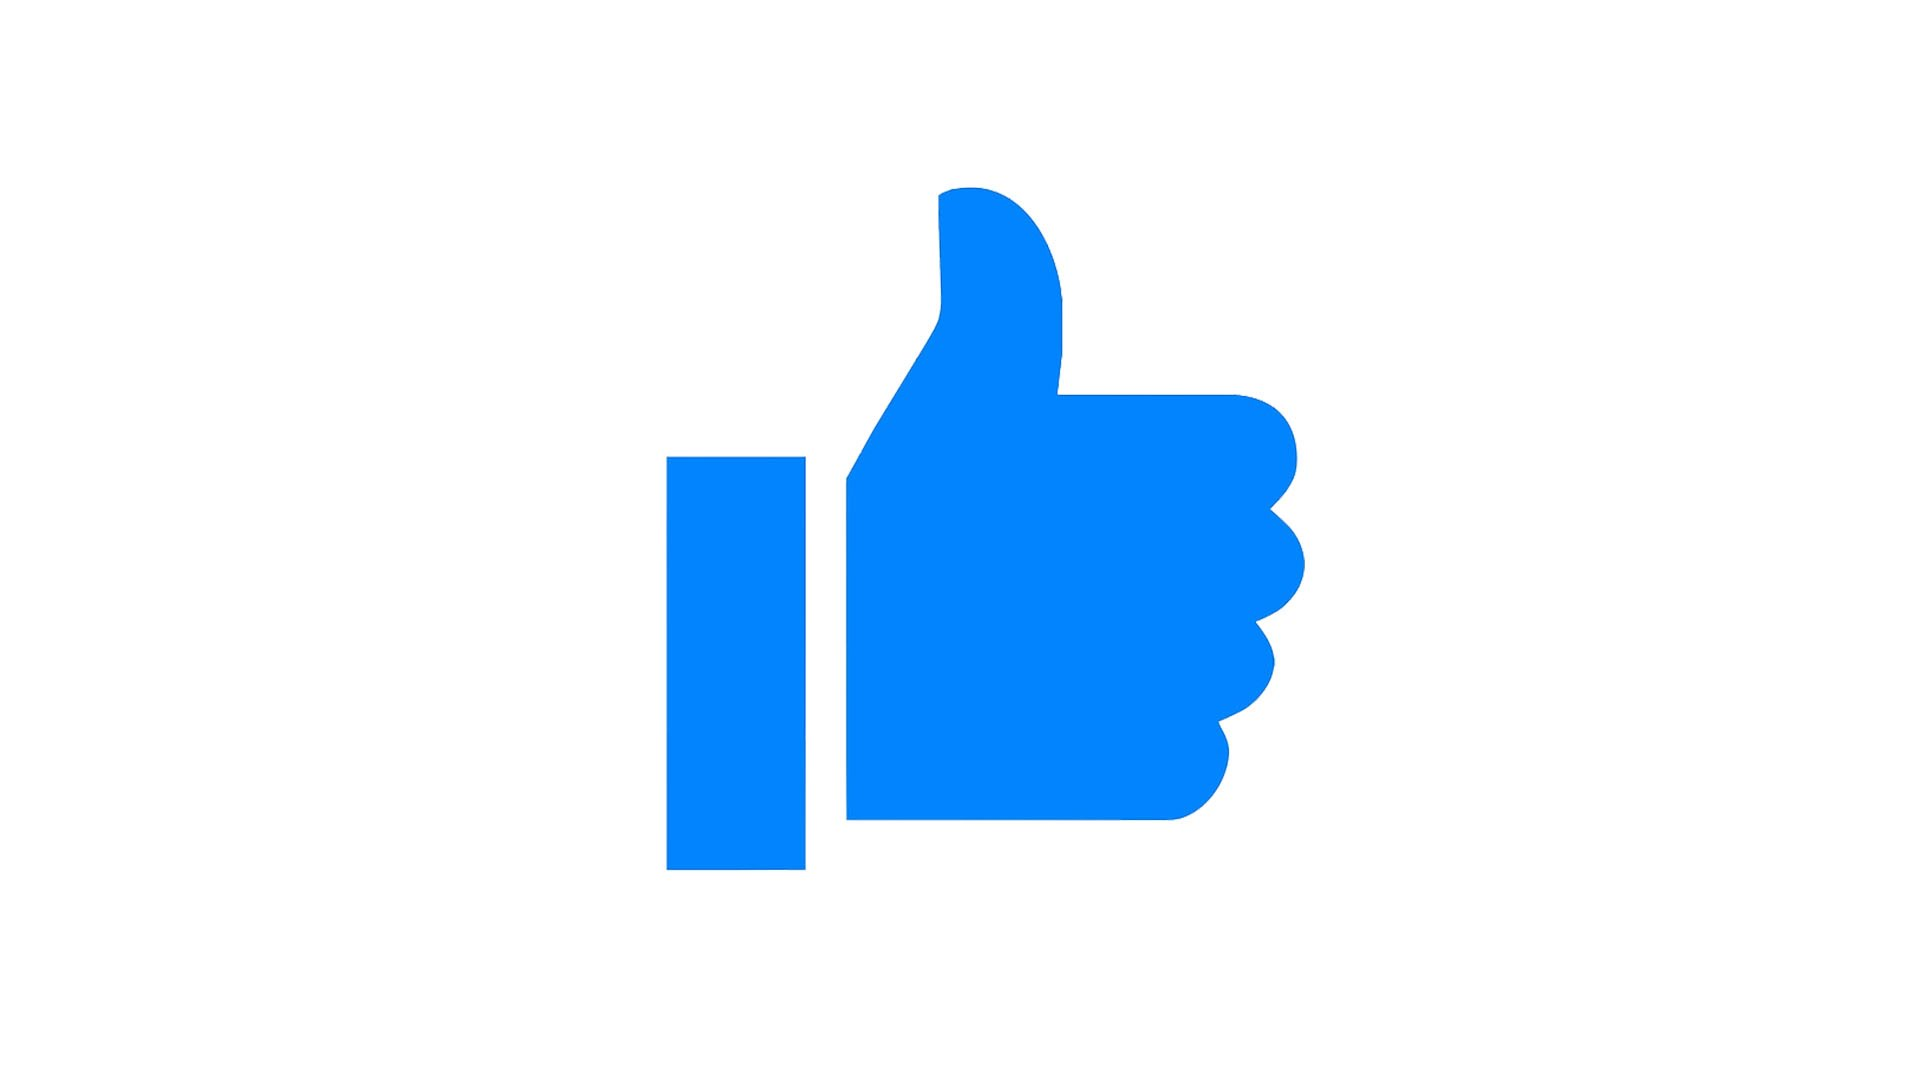 Two Thumbs Up PNG HD - 136111